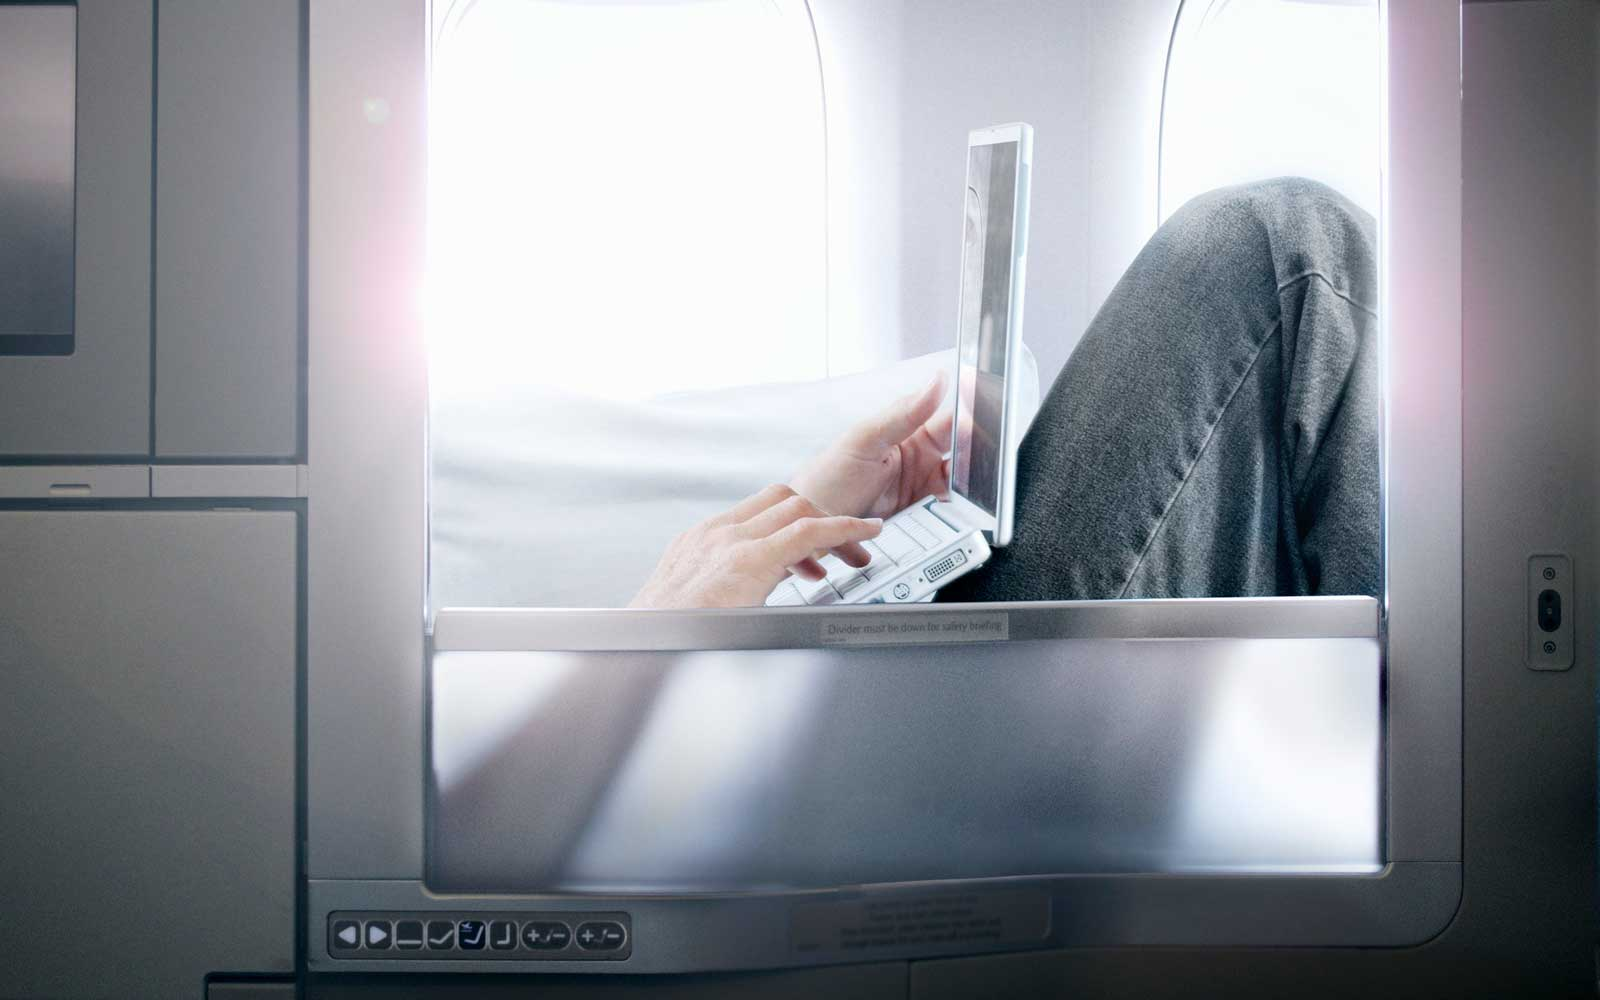 Man on airplane in first class with laptop